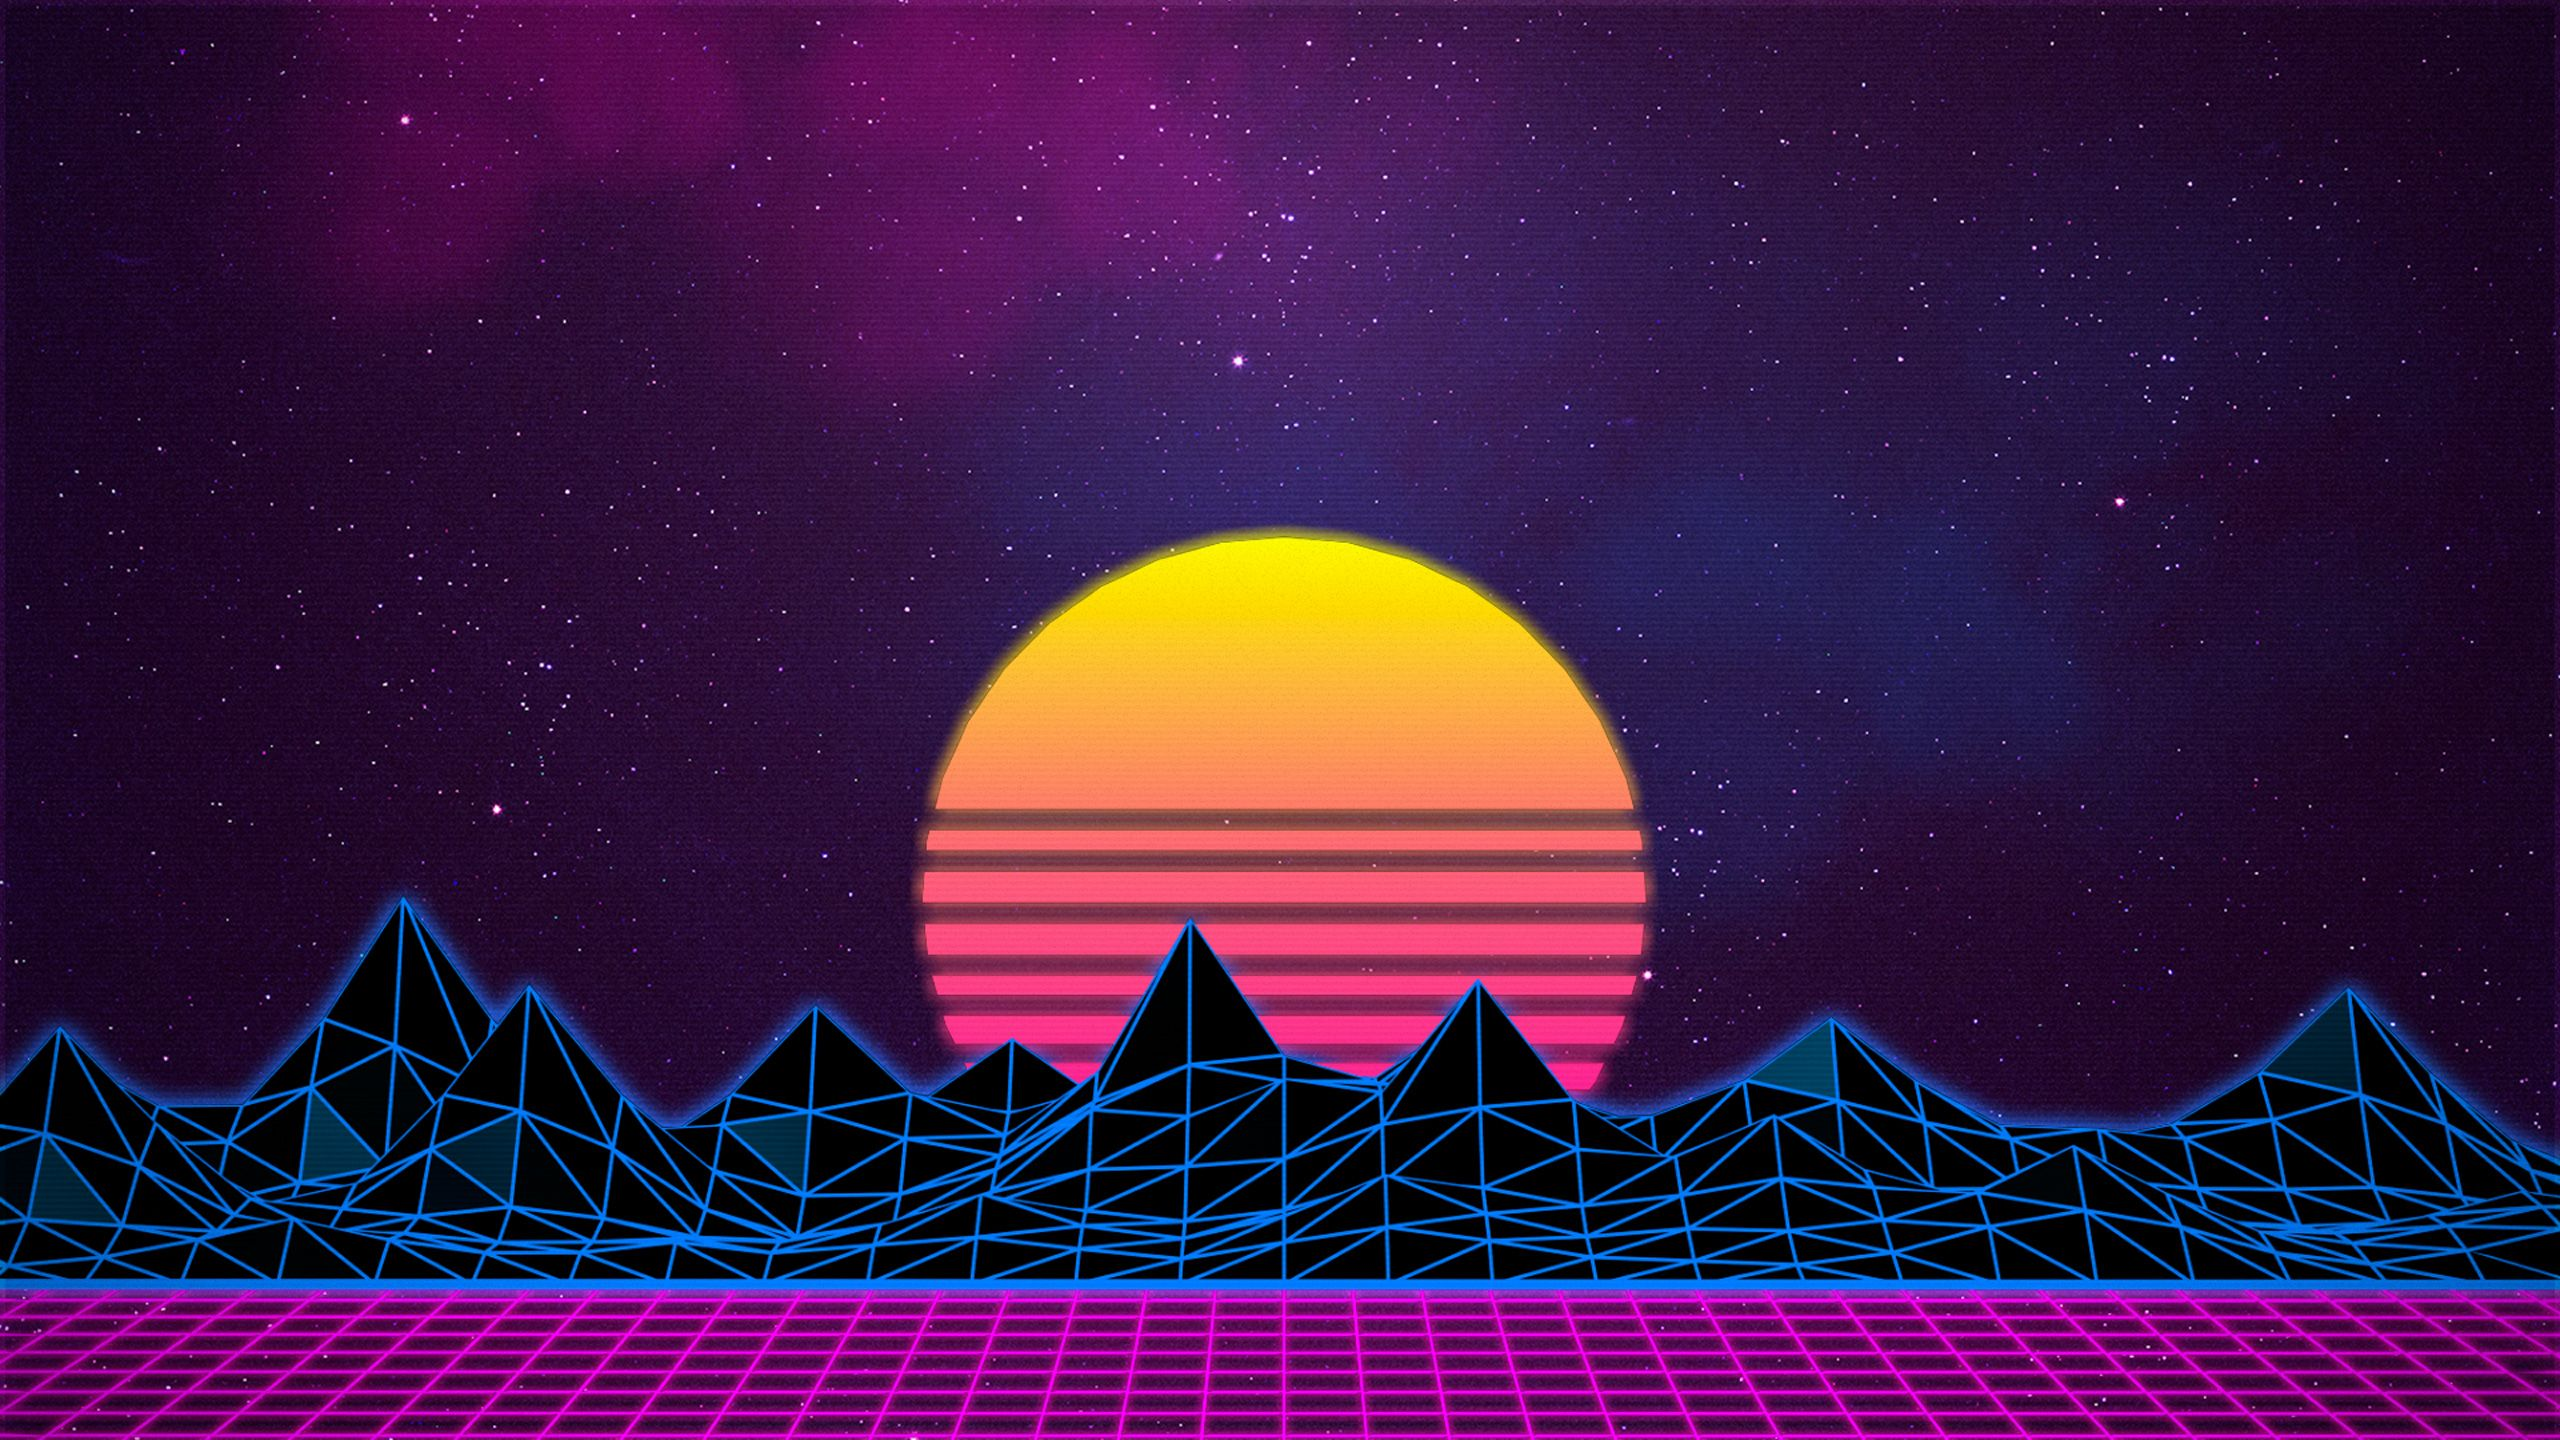 Retro Wave Wallpapers   Top Retro Wave Backgrounds 2560x1440